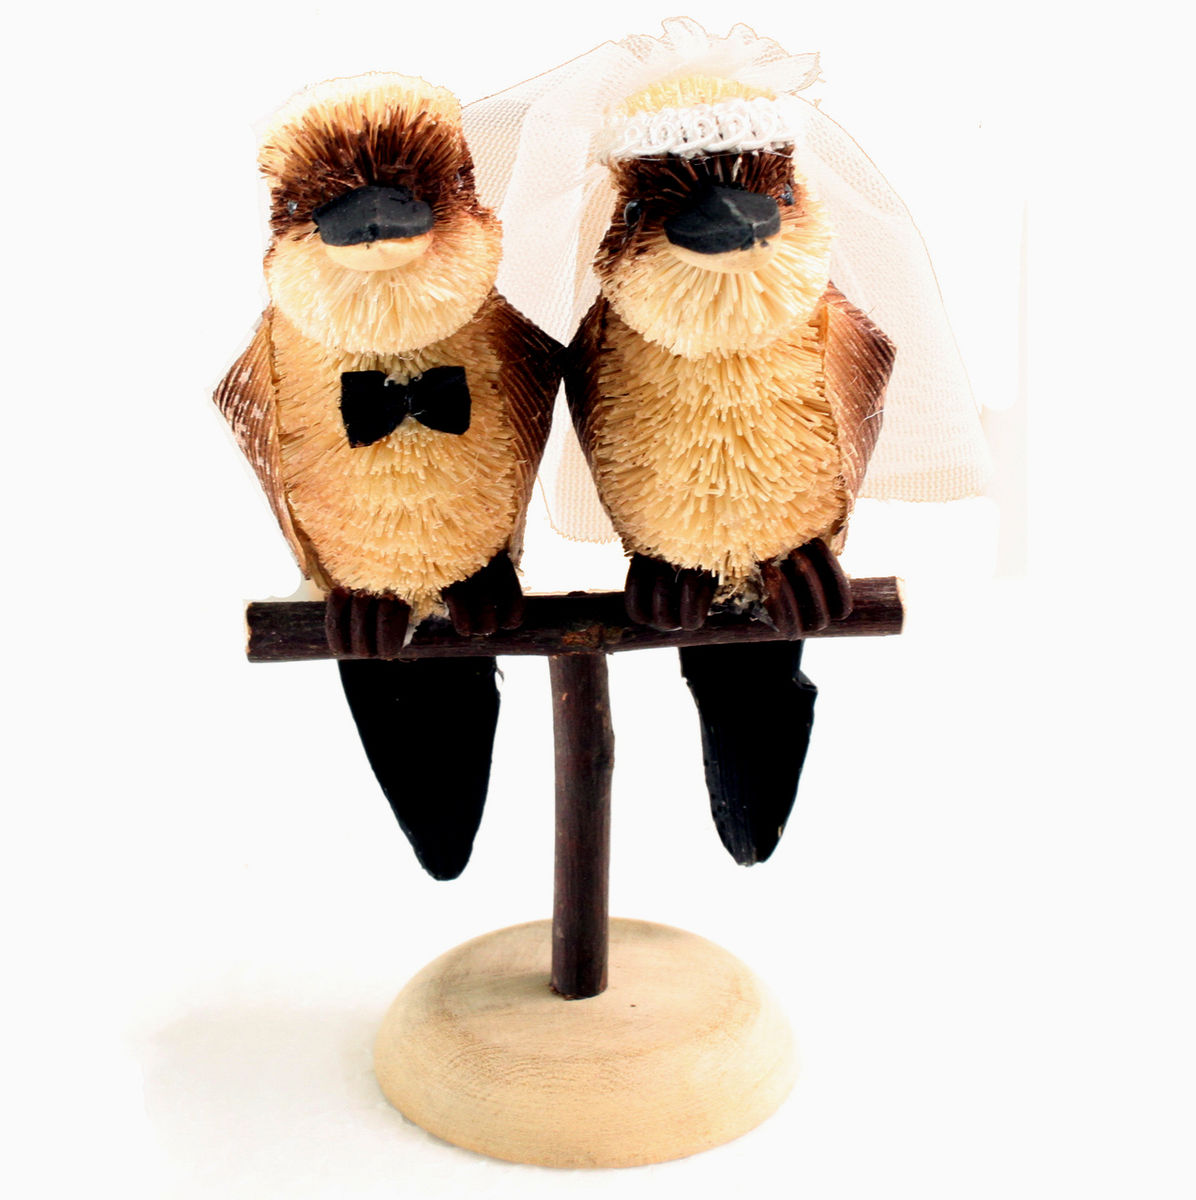 Kookaburra Wedding Cake Topper